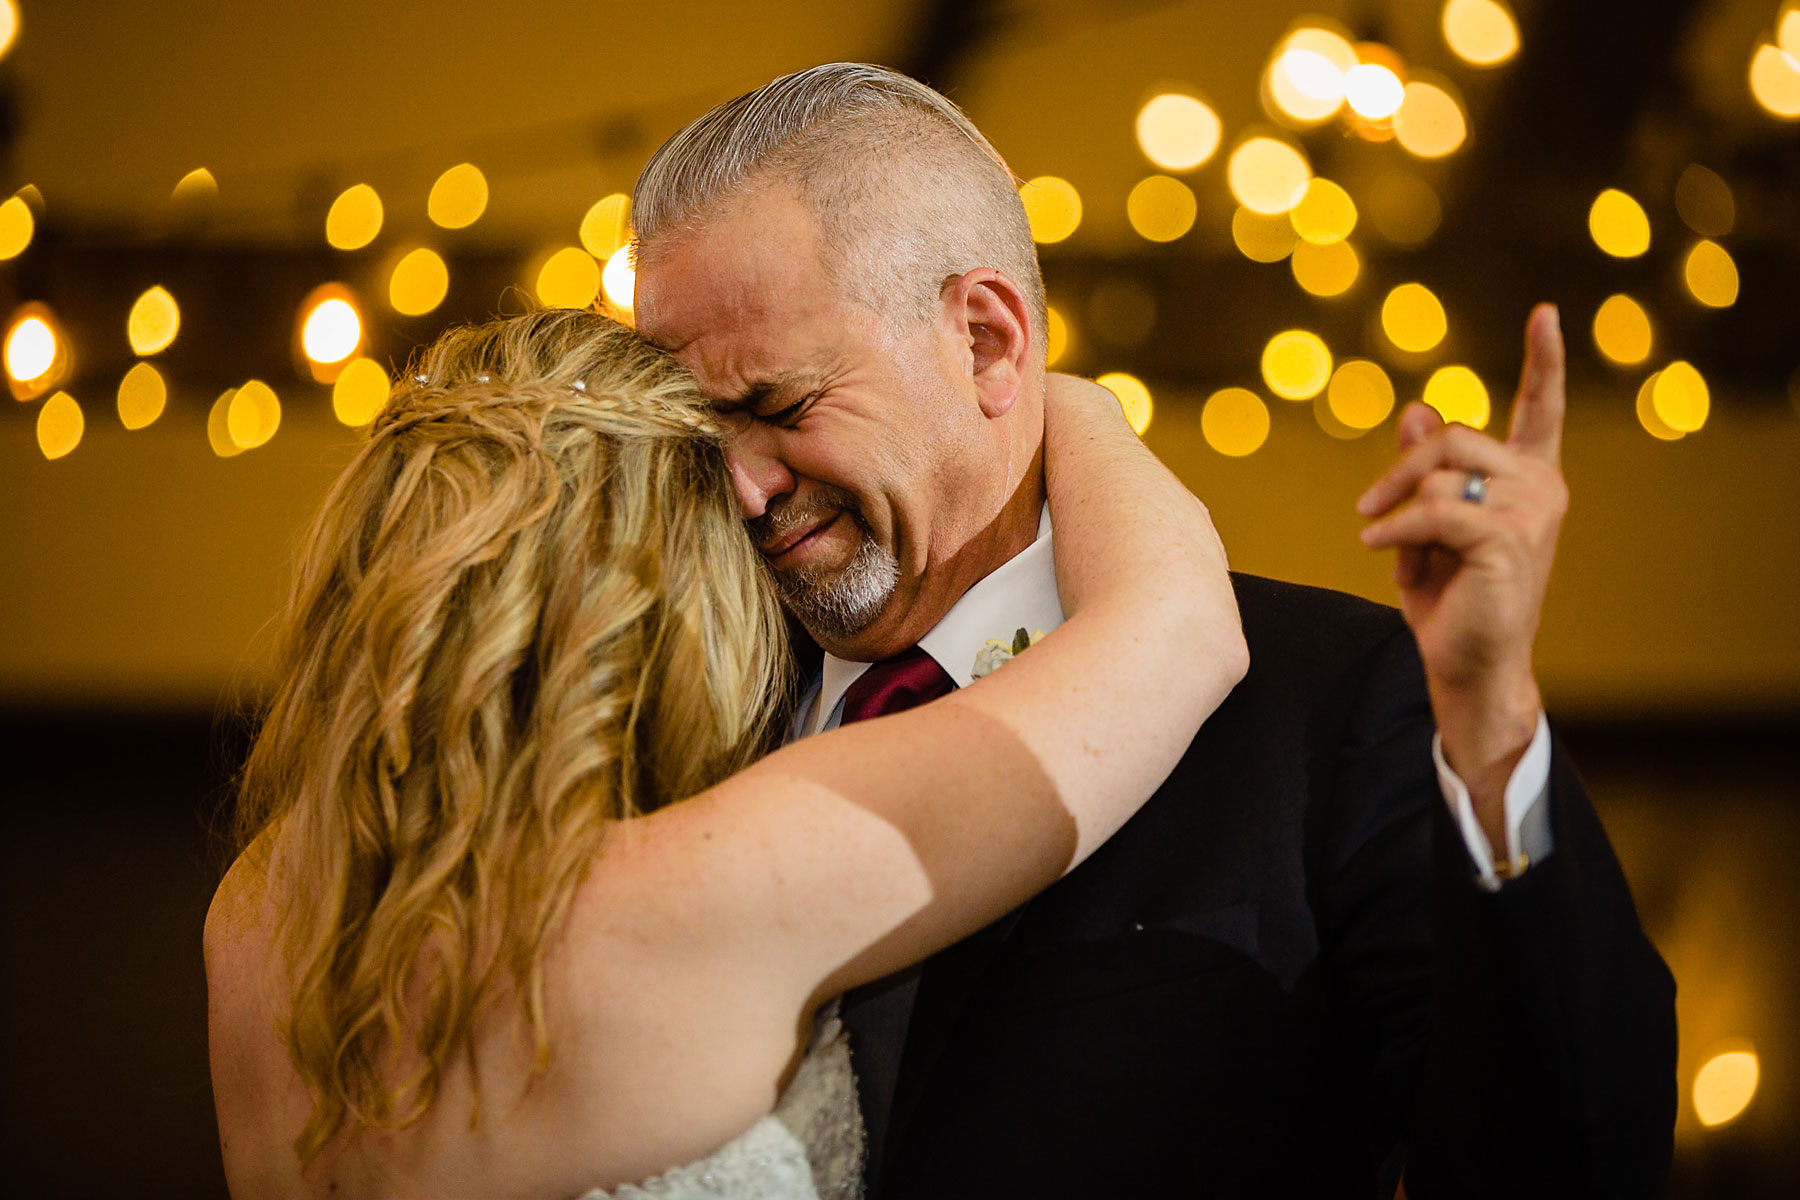 Wedding Photography Moments with Parents. Photo capturing the Dad dancing with his daughter. Parents getting emotional at the wedding.